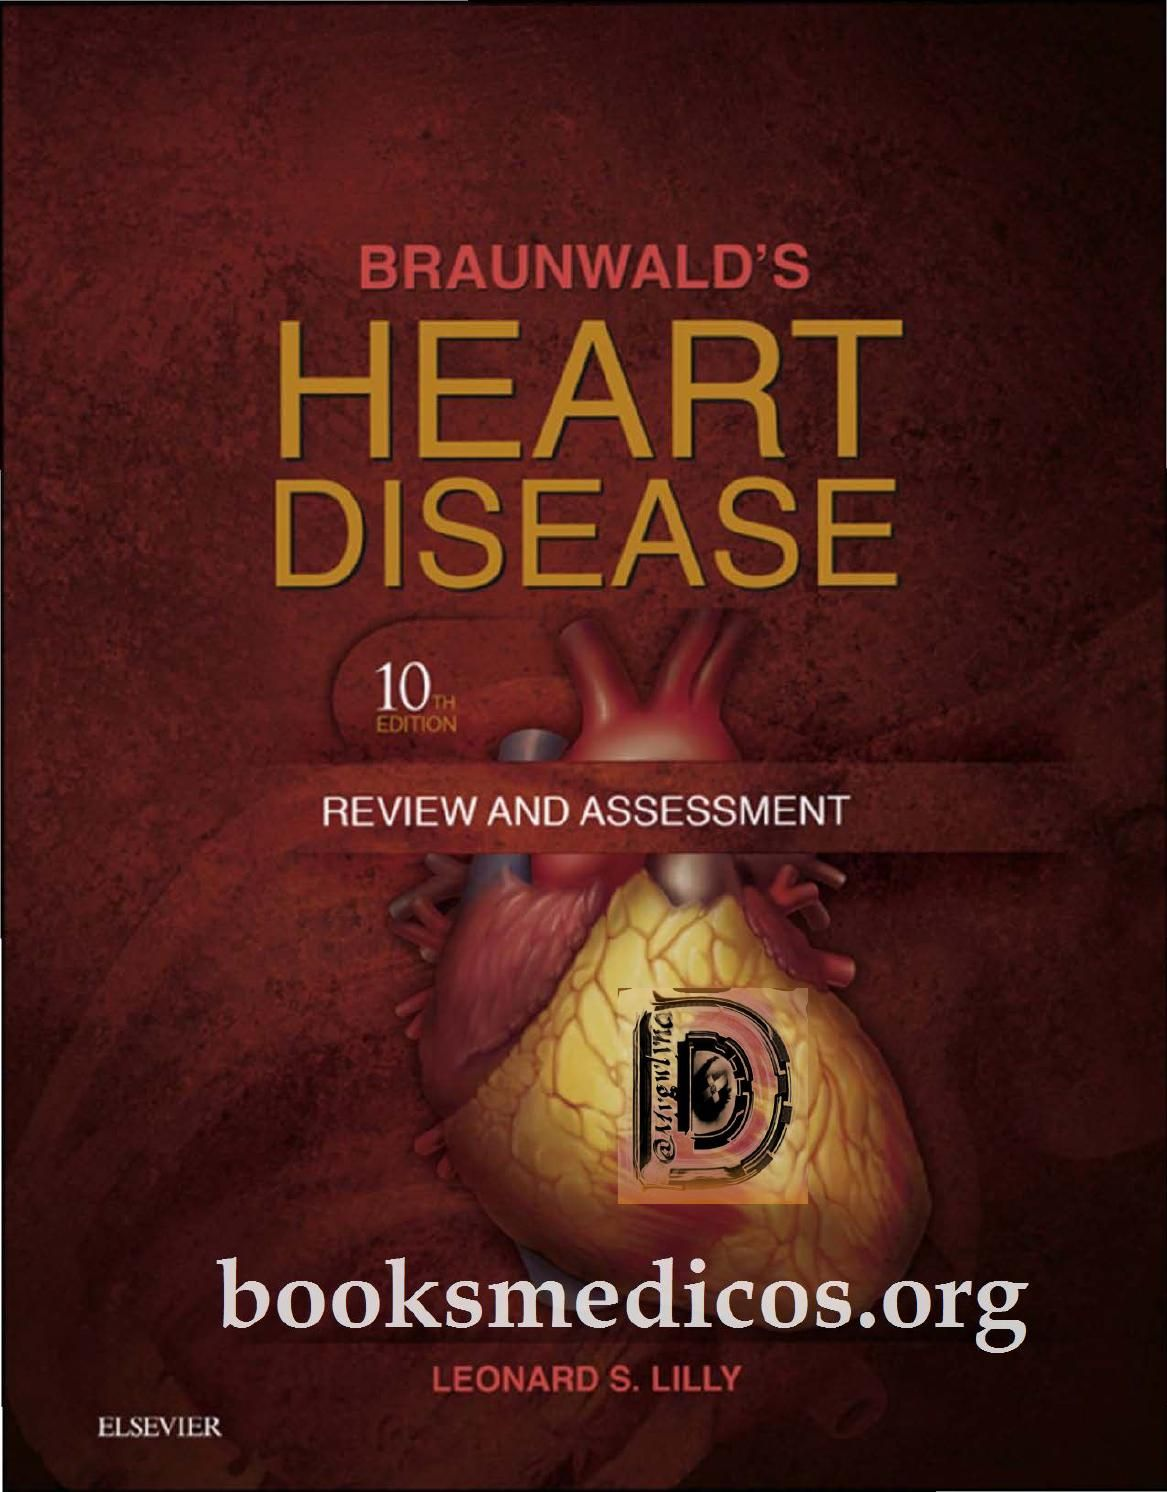 Braunwalds heart disease review and assessment  | Medical